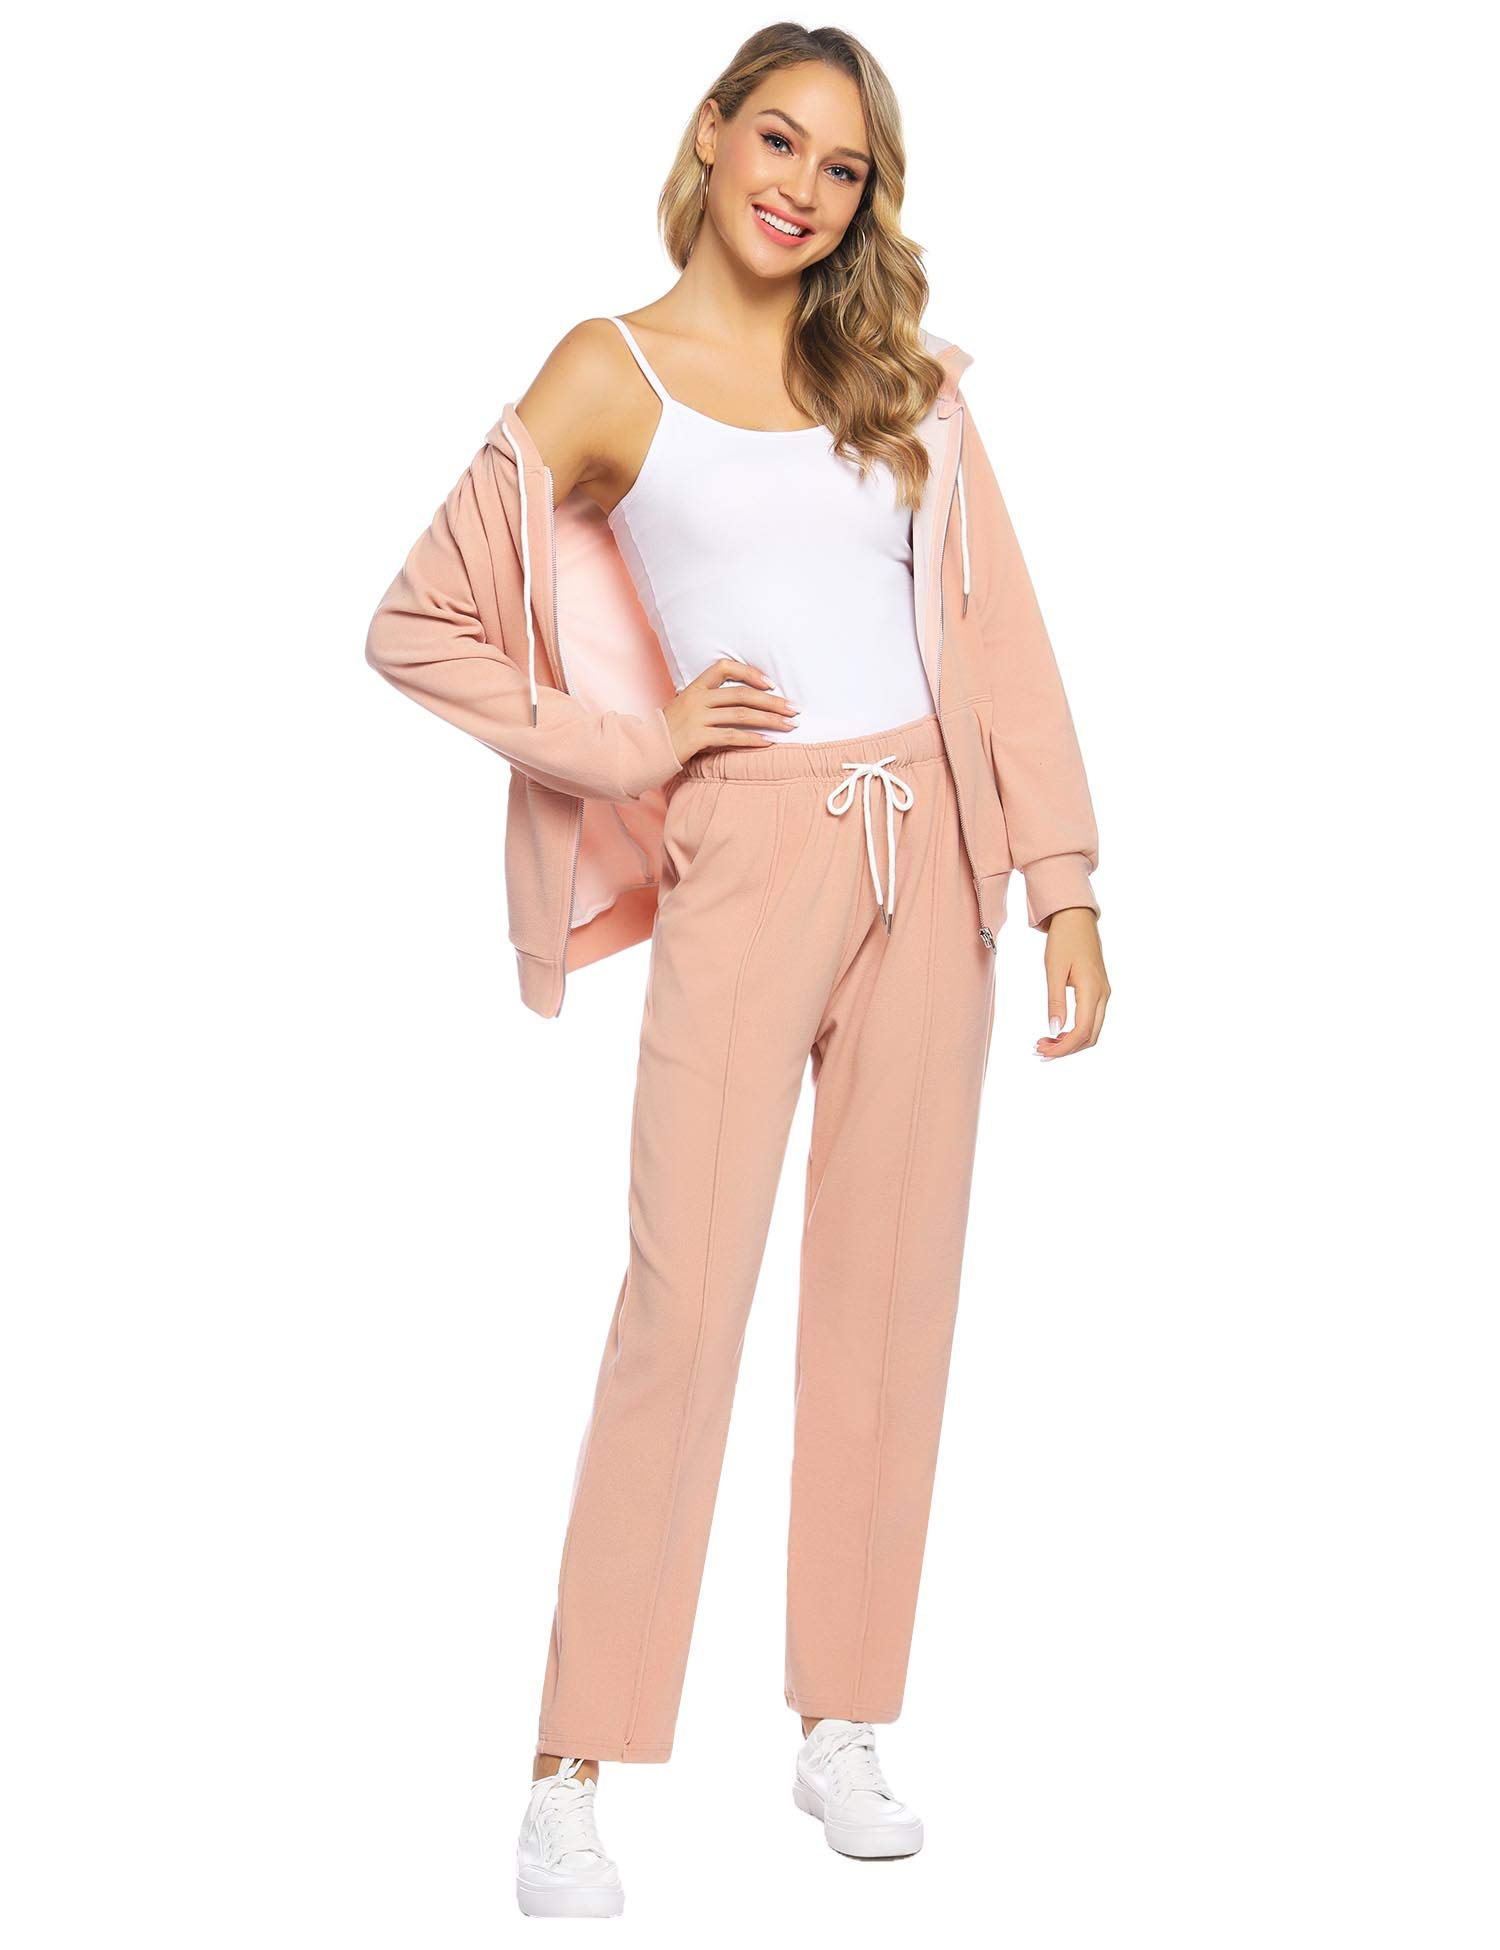 Abollria Women's Active Solid Velour Tracksuit Zip up Hoodie & Pullover Sweatshirts and Sweat Pant Sweatsuit Apricot by Abollria